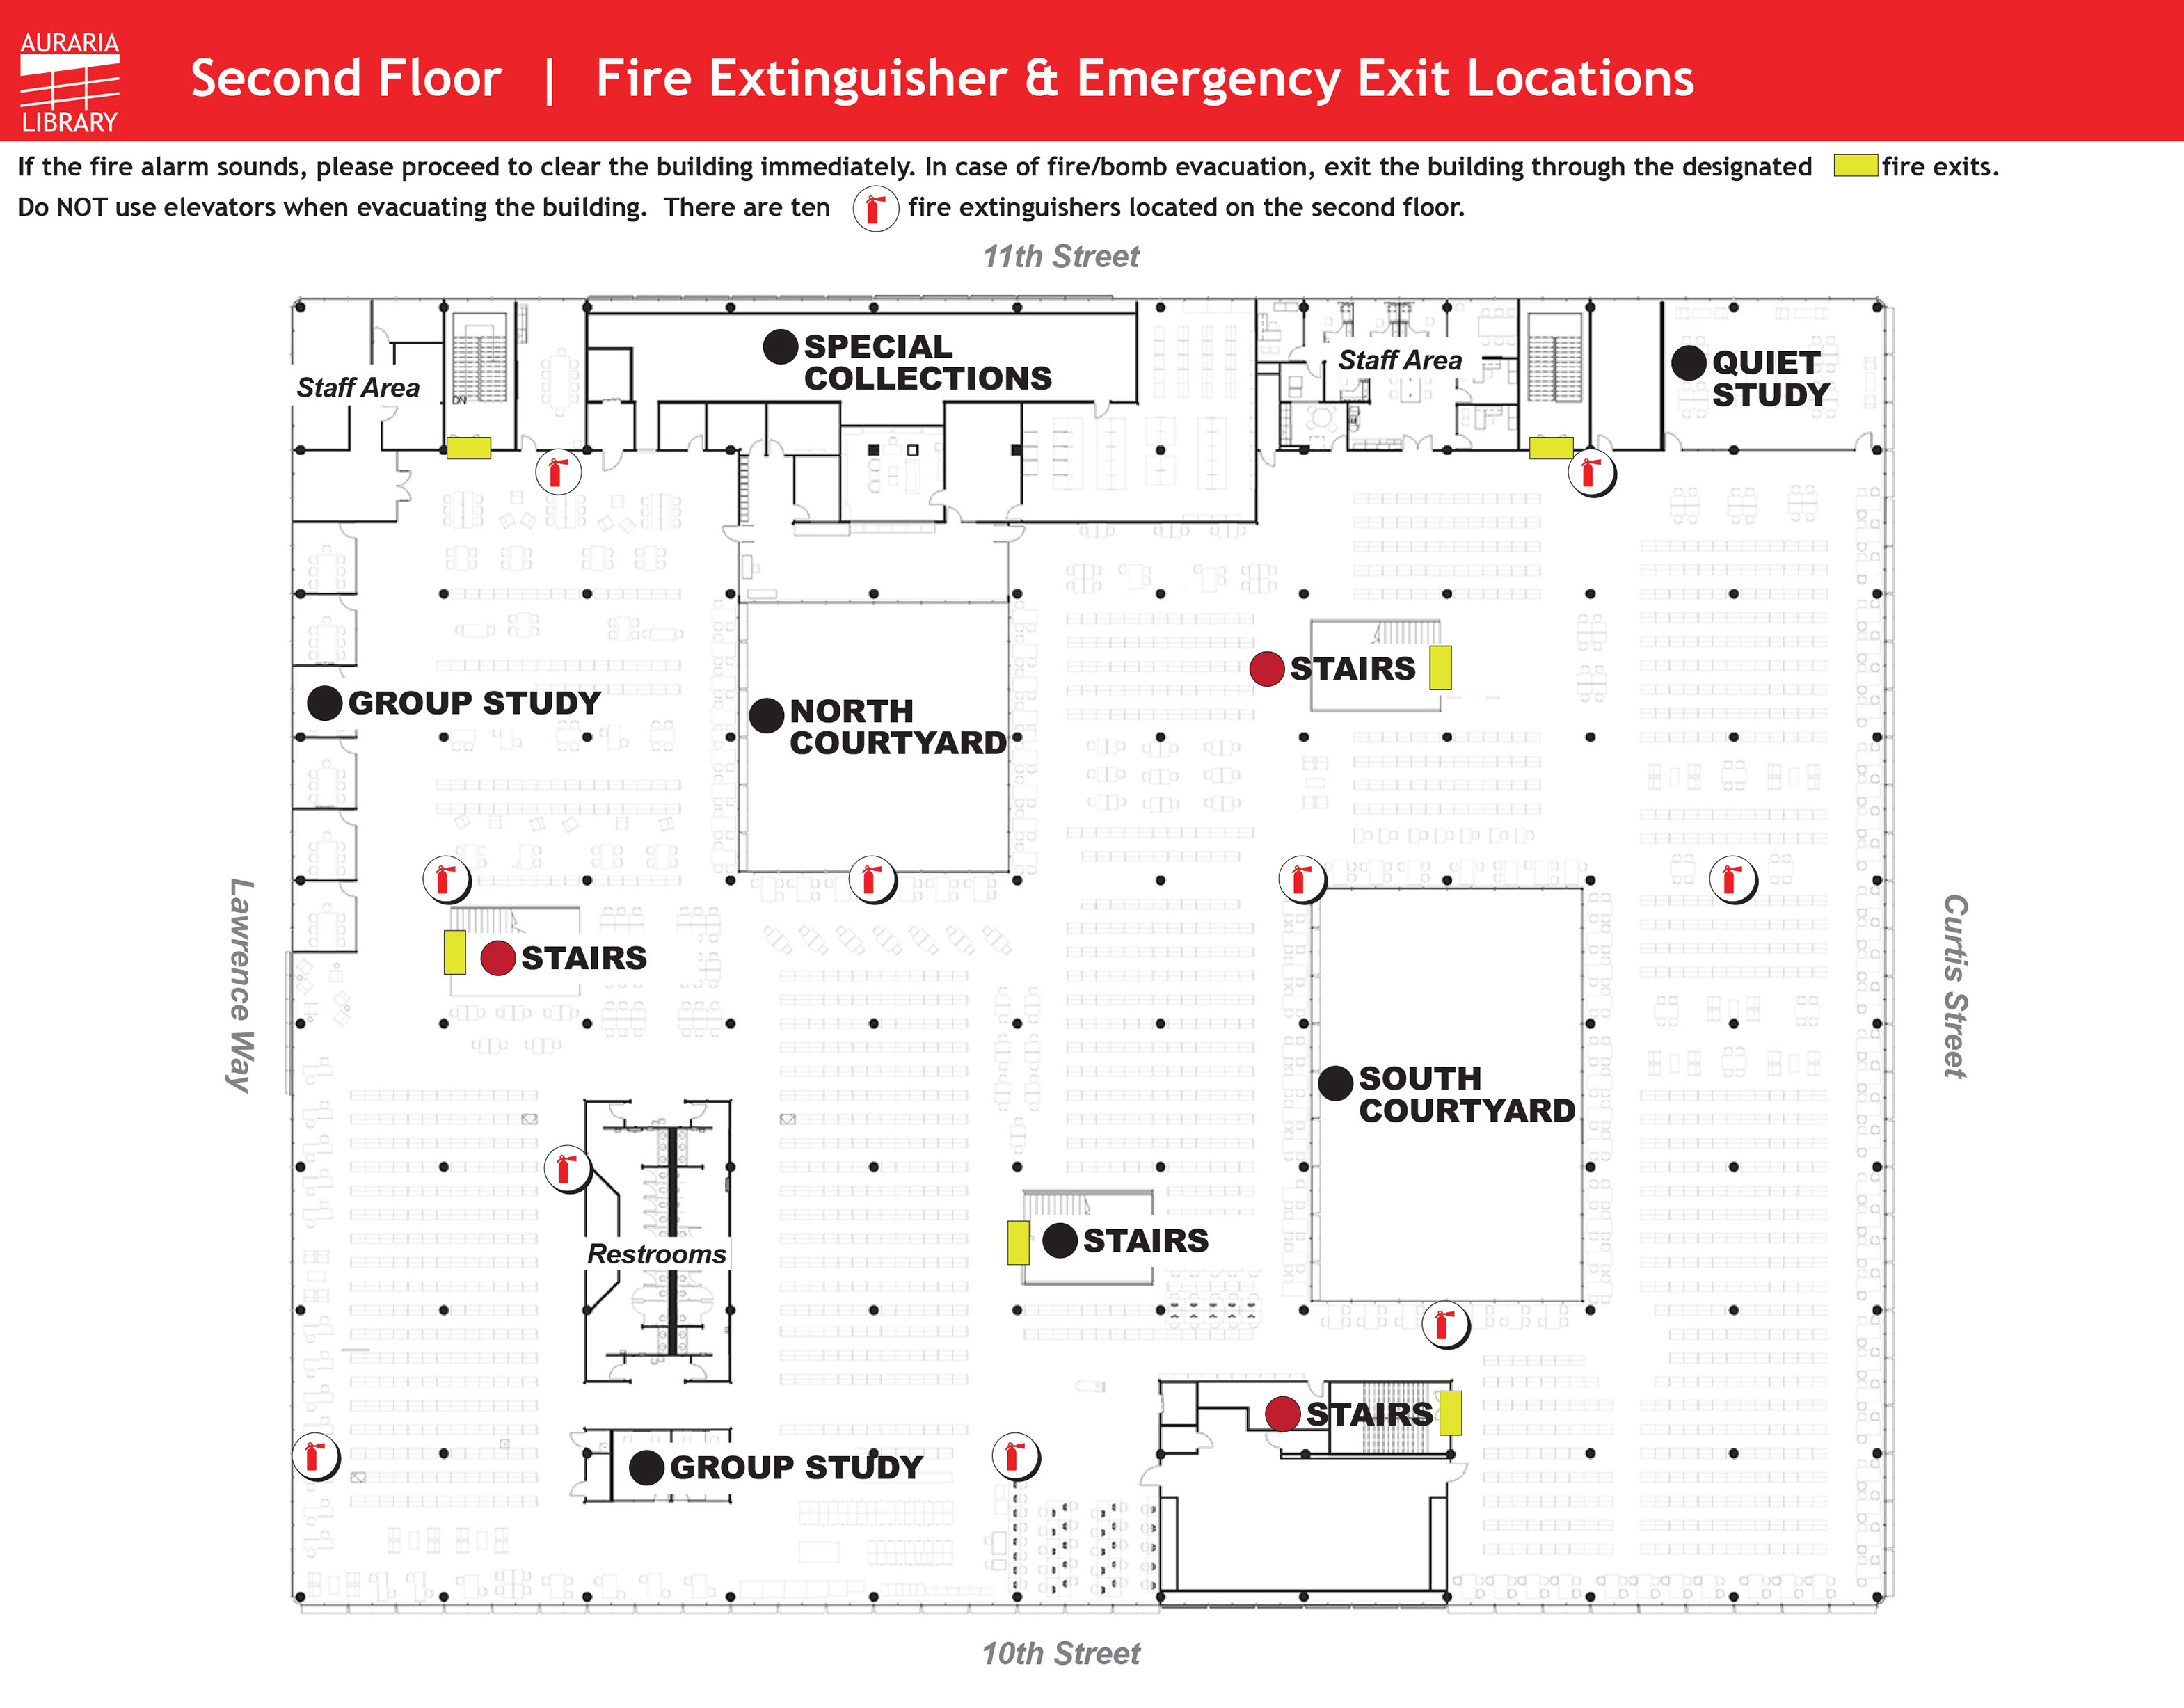 Second Floor Fire Extinguisher and Emergency Exit Maps